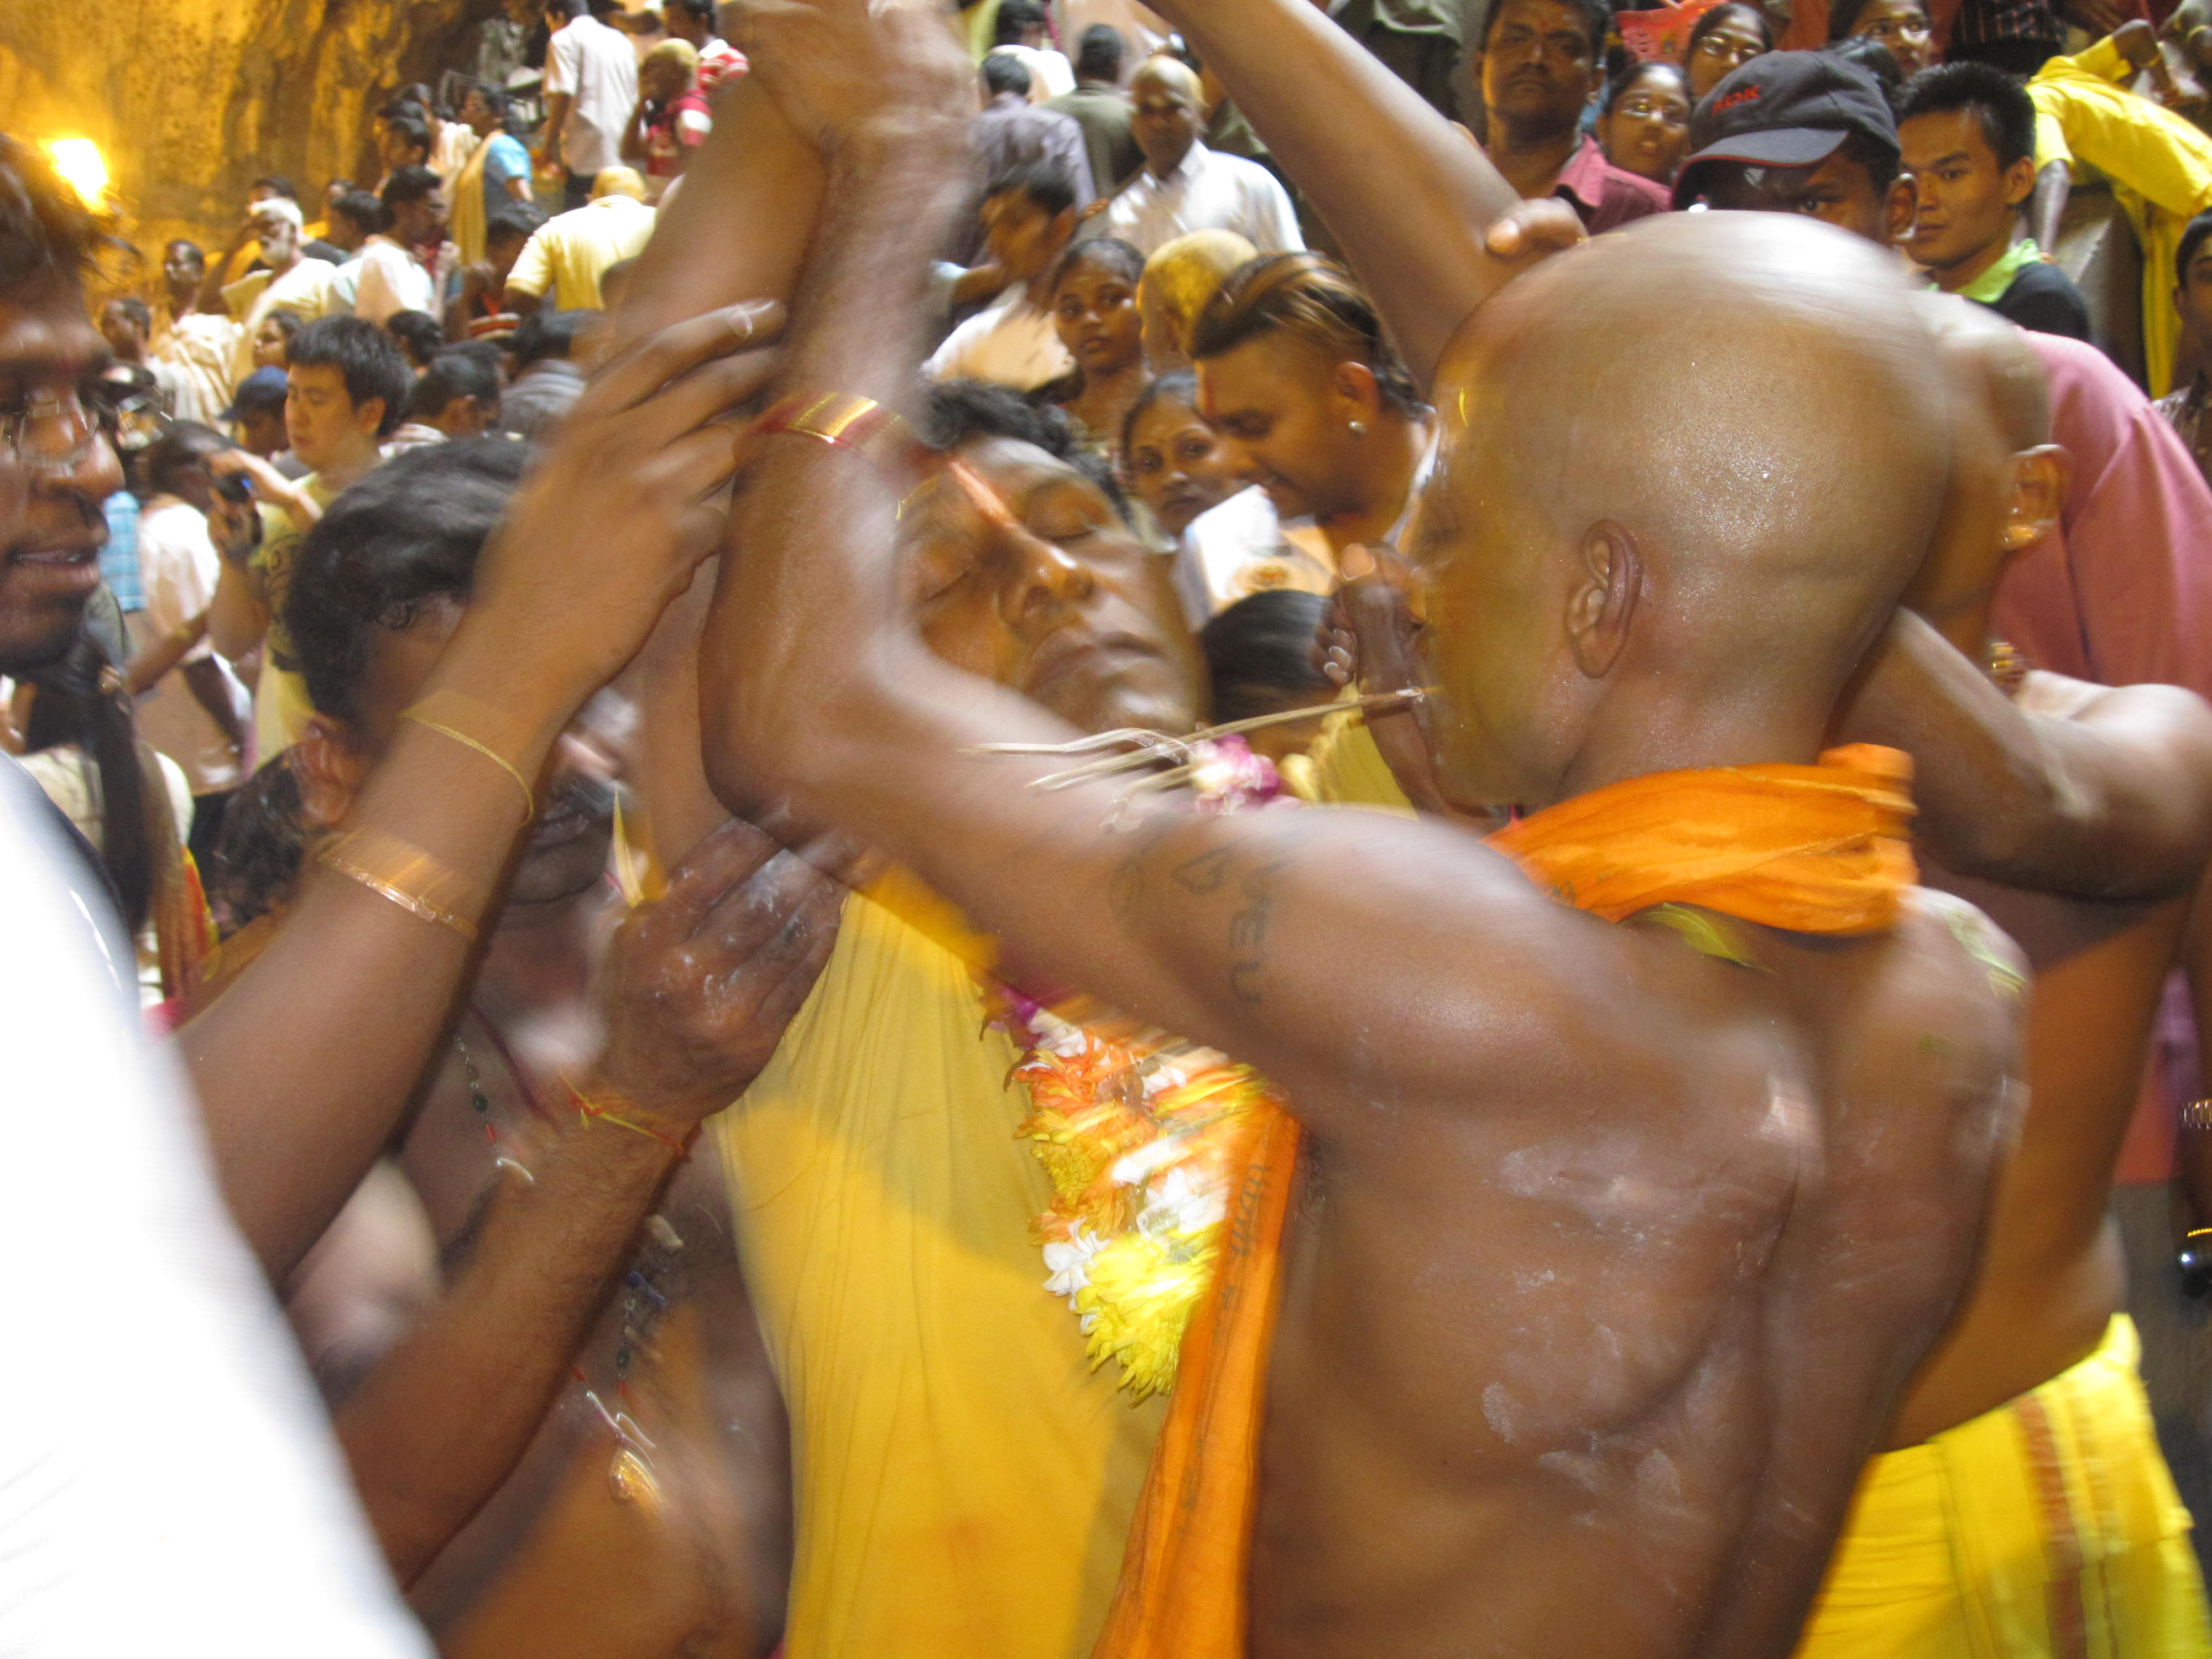 Thaipusam Hindu Festival at the Batu Caves in Malaysia